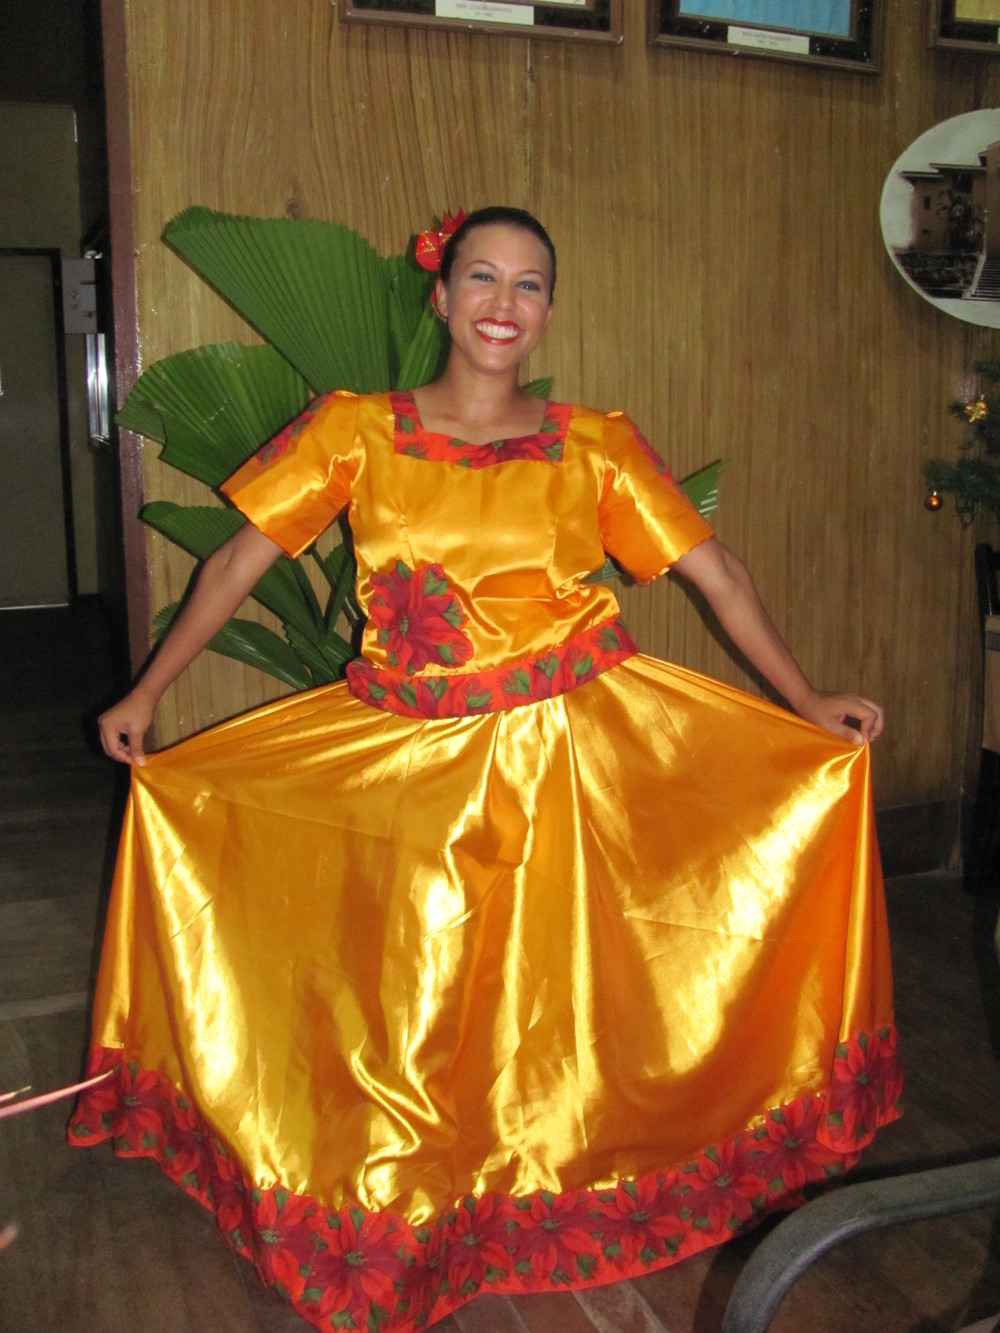 Wearing traditional Filipino attire